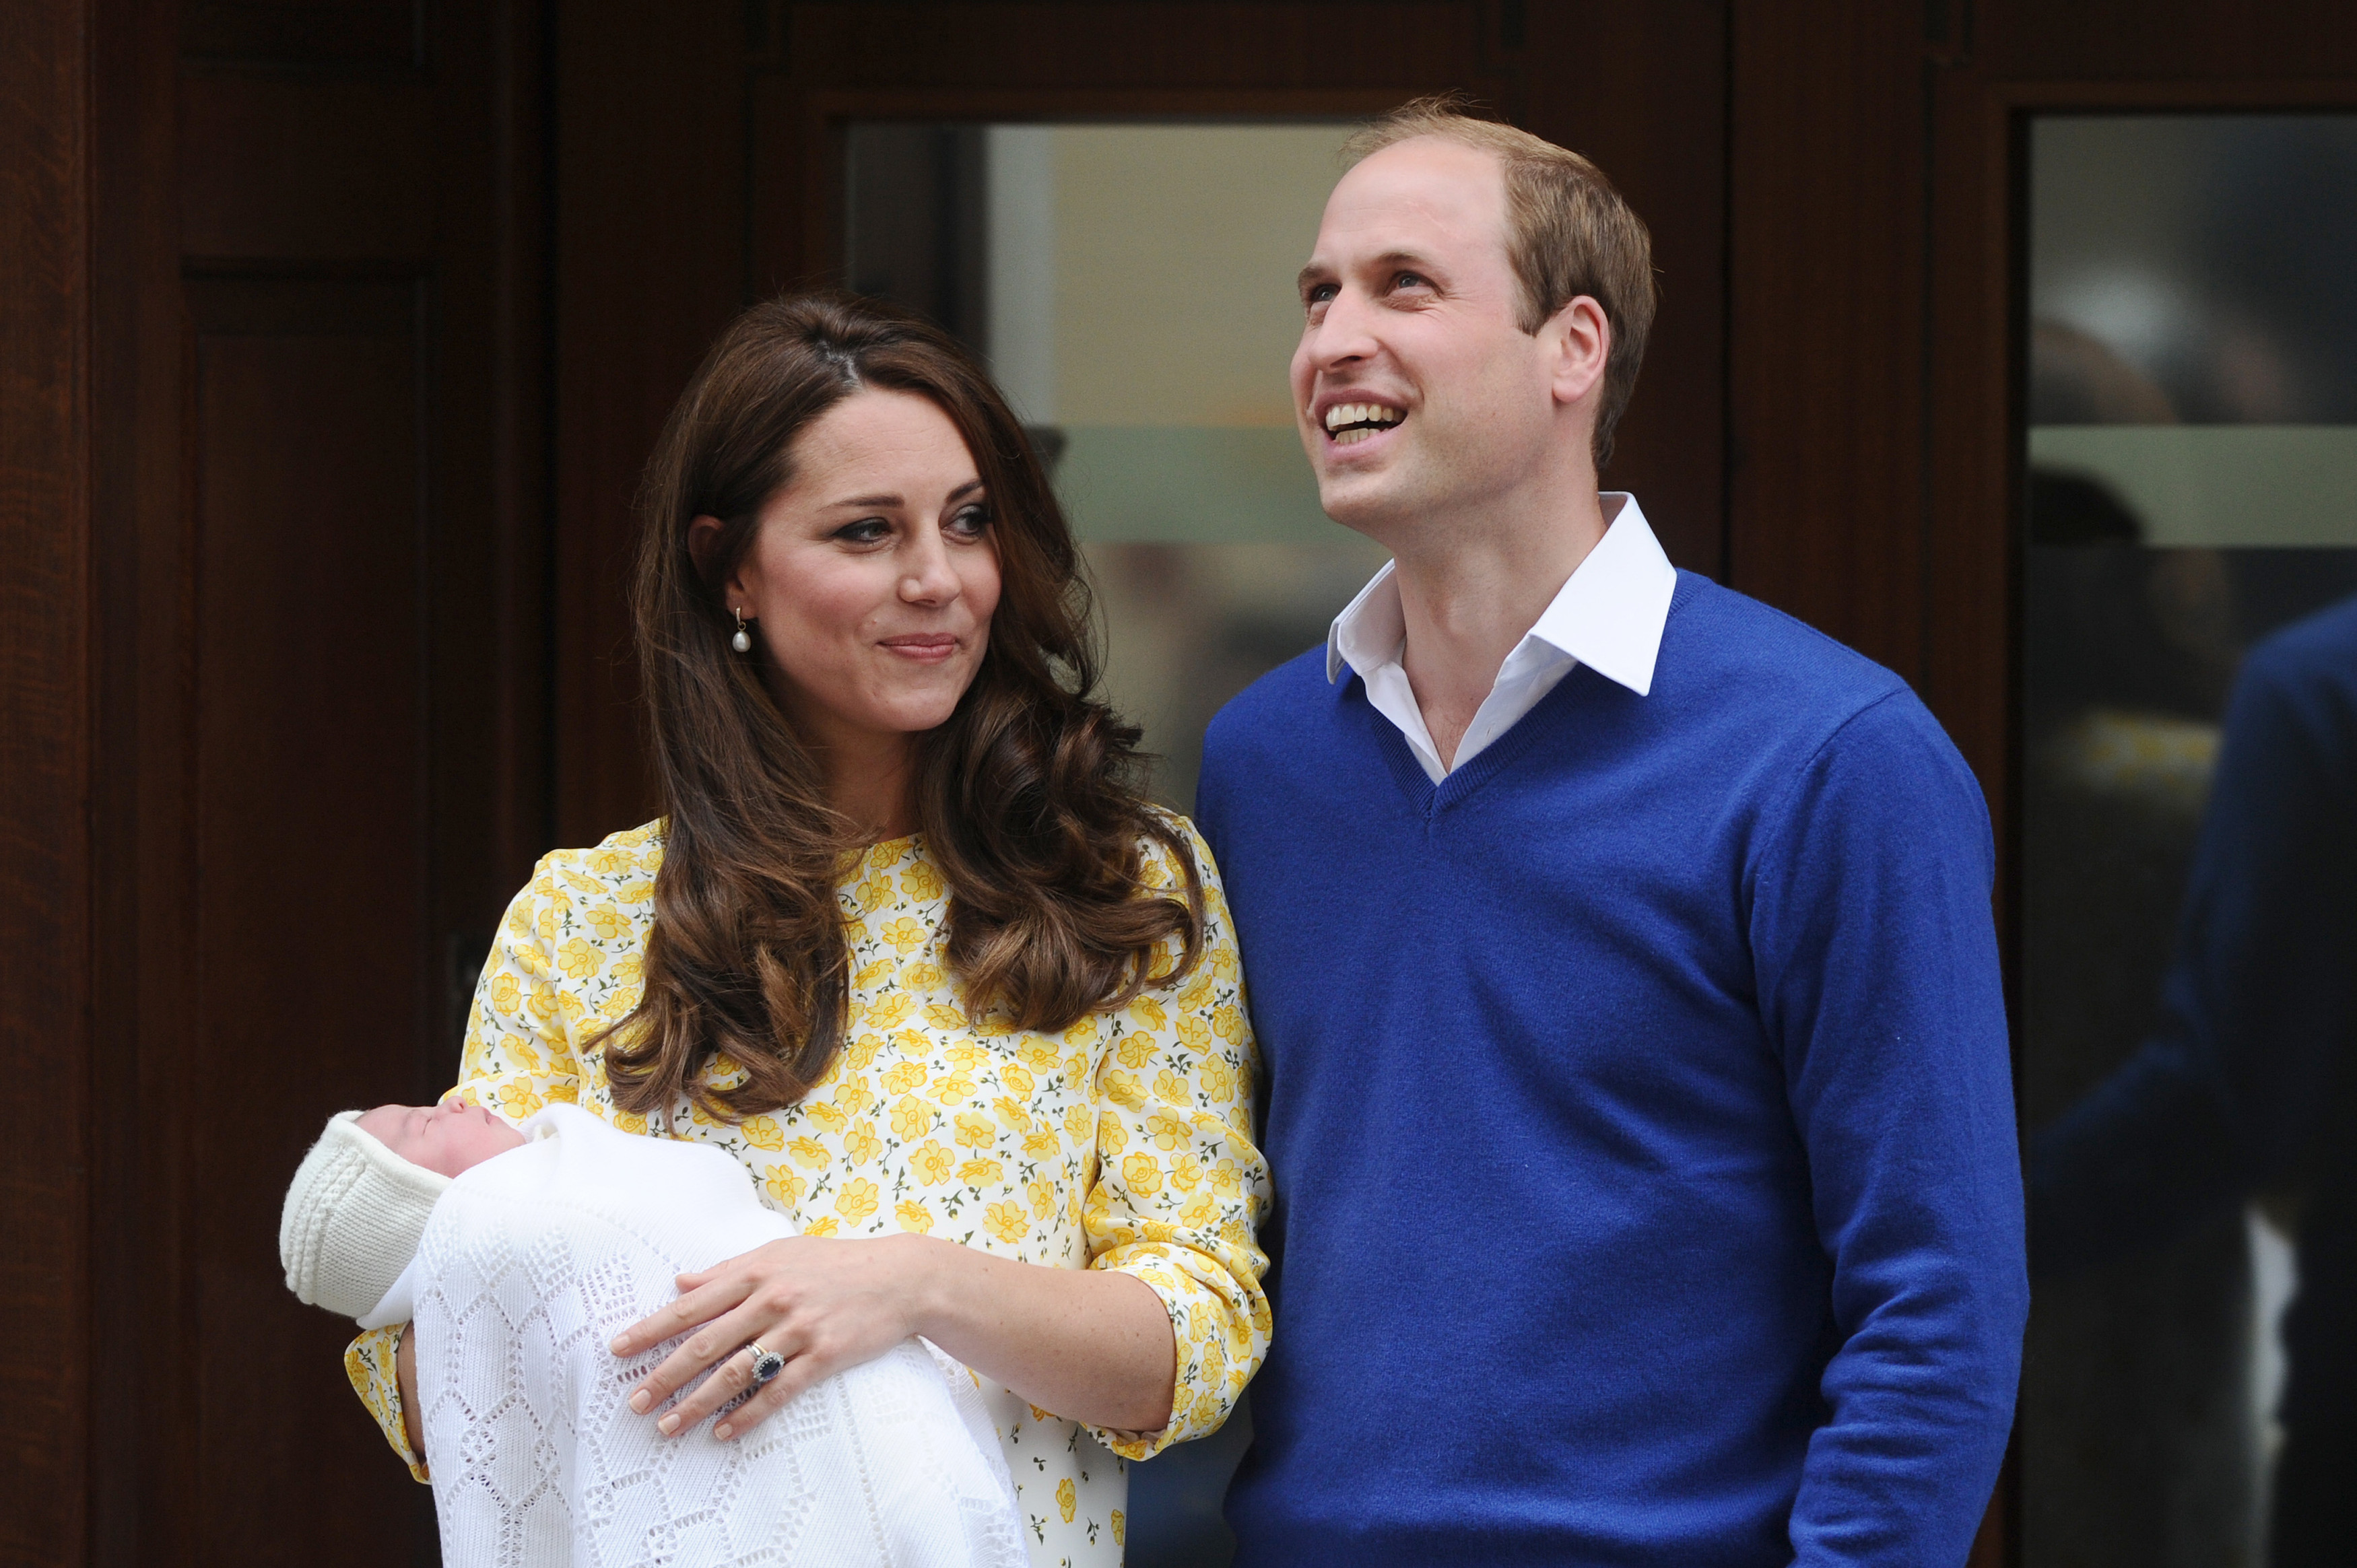 Rivelato il costoso regime dietetico di Kate Middleton